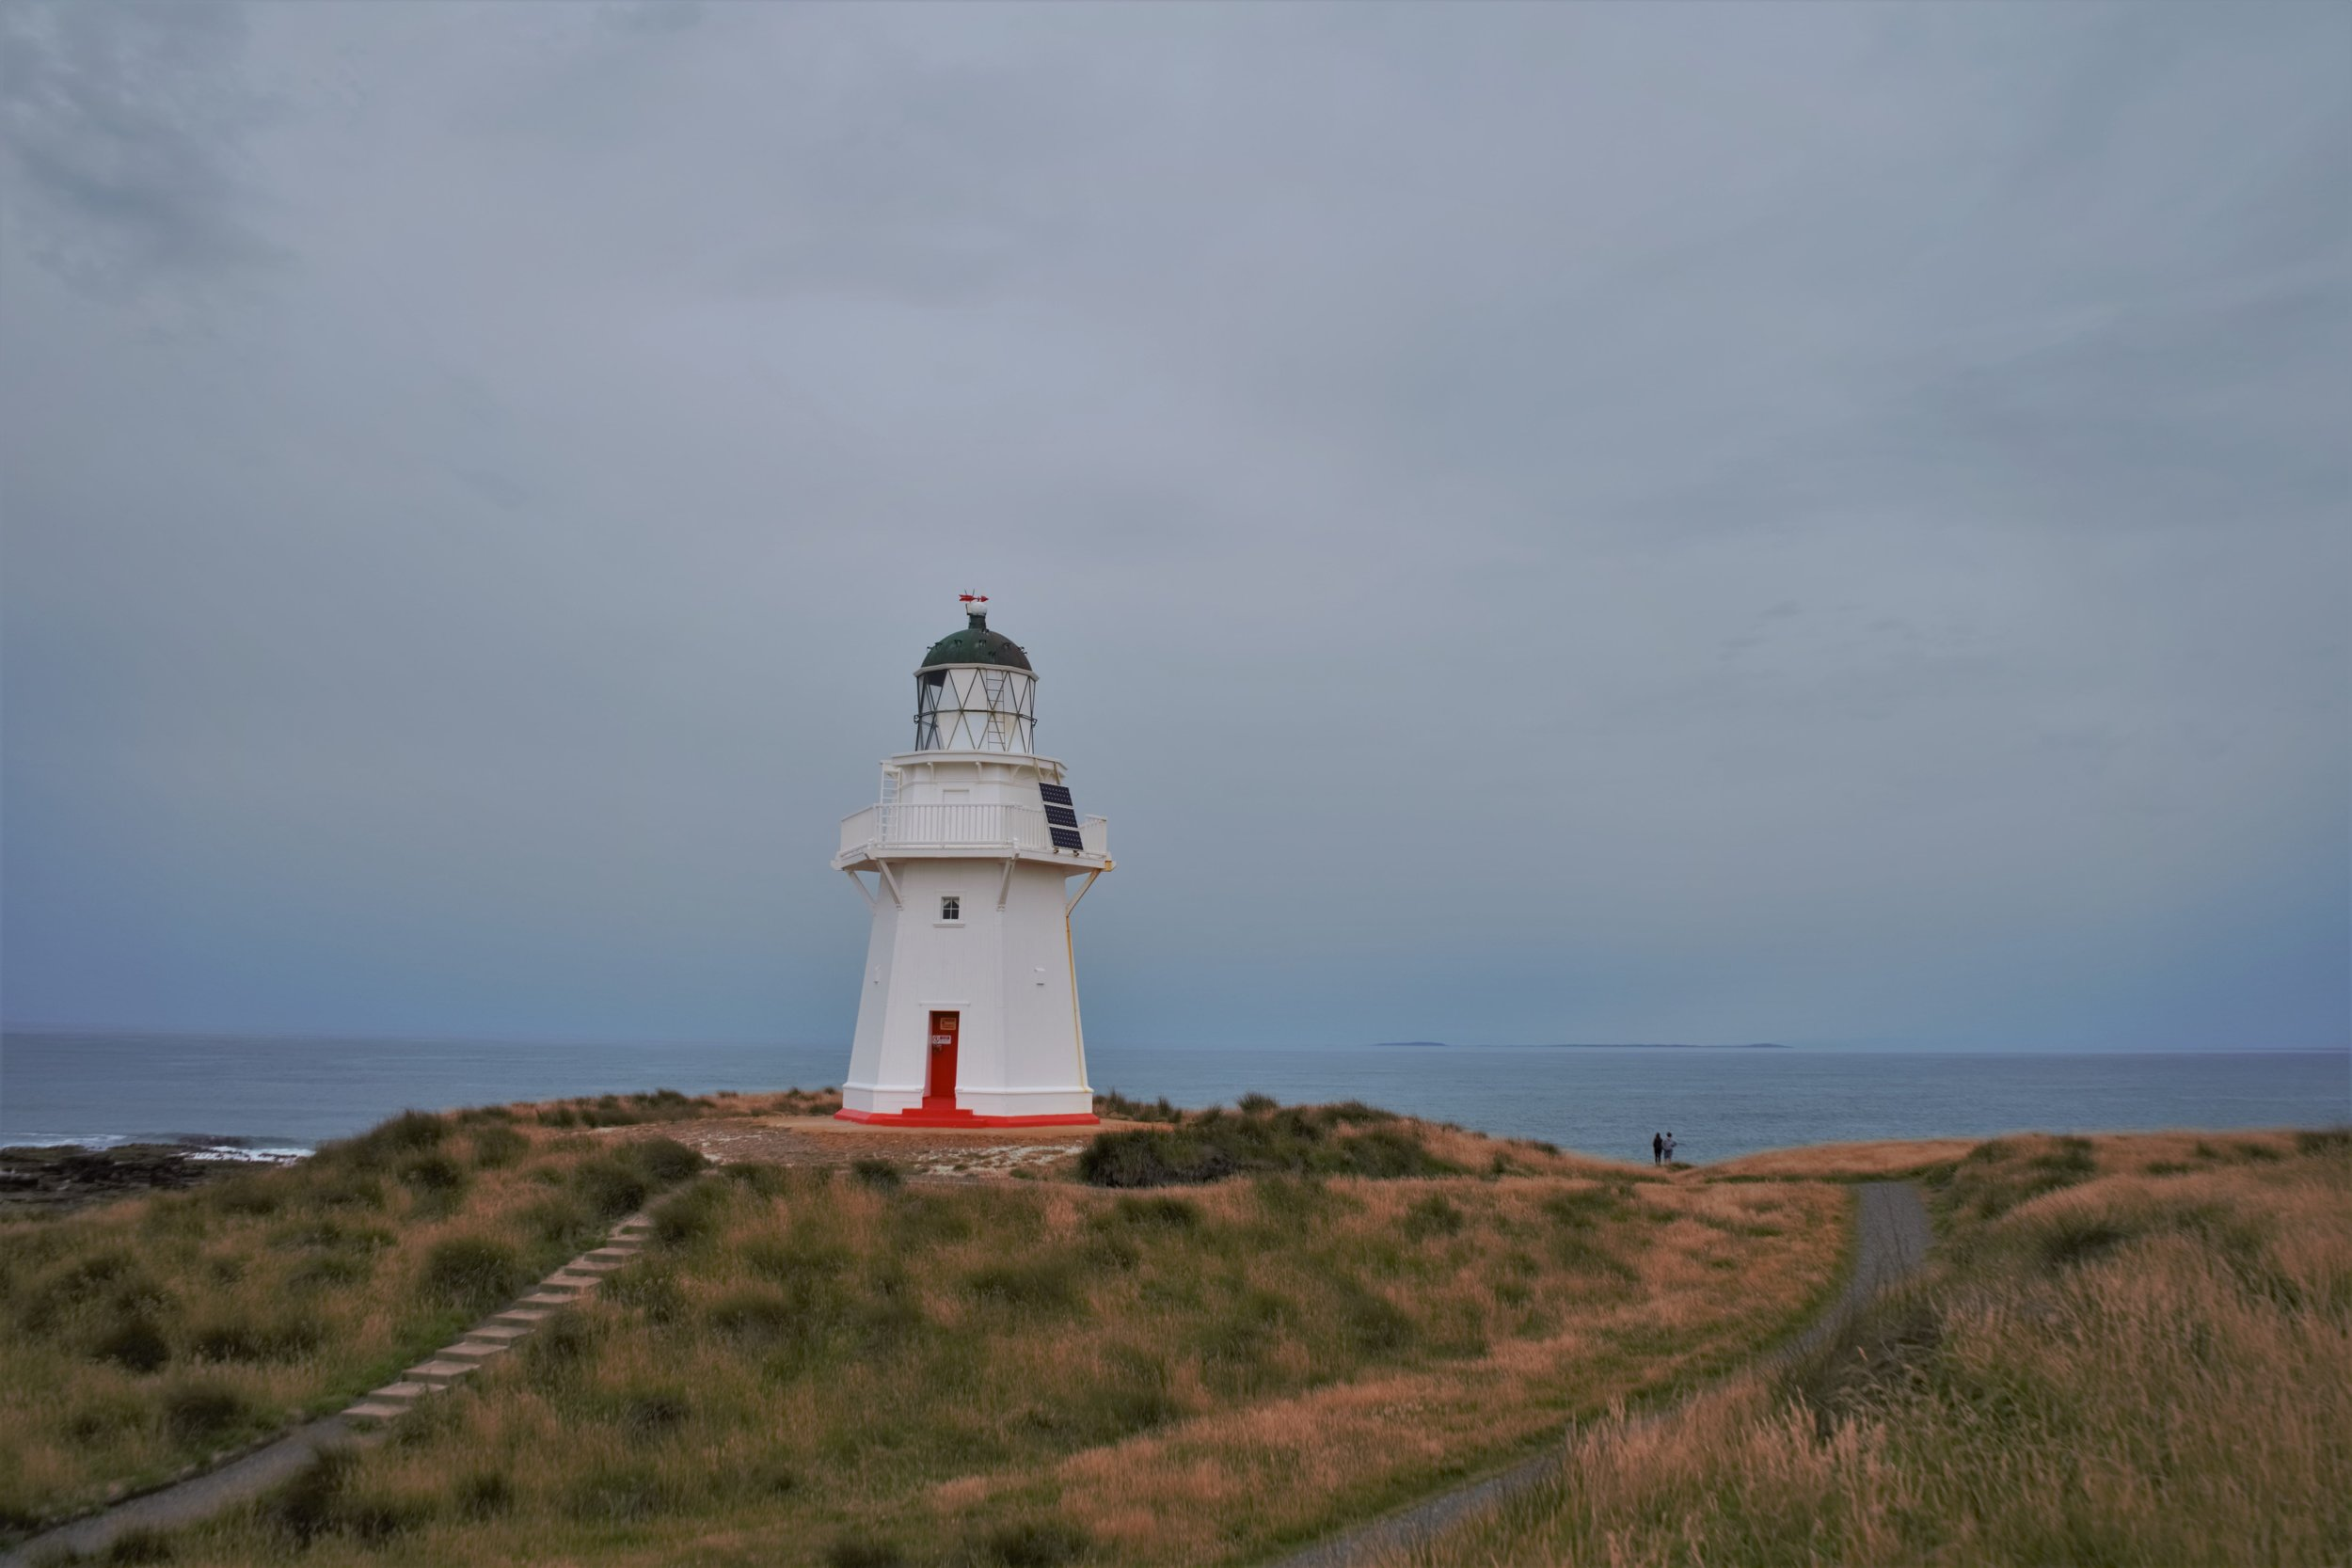 The lighthouse at Waipapa Point is one of the best things to see during your three day Catlins itinerary.